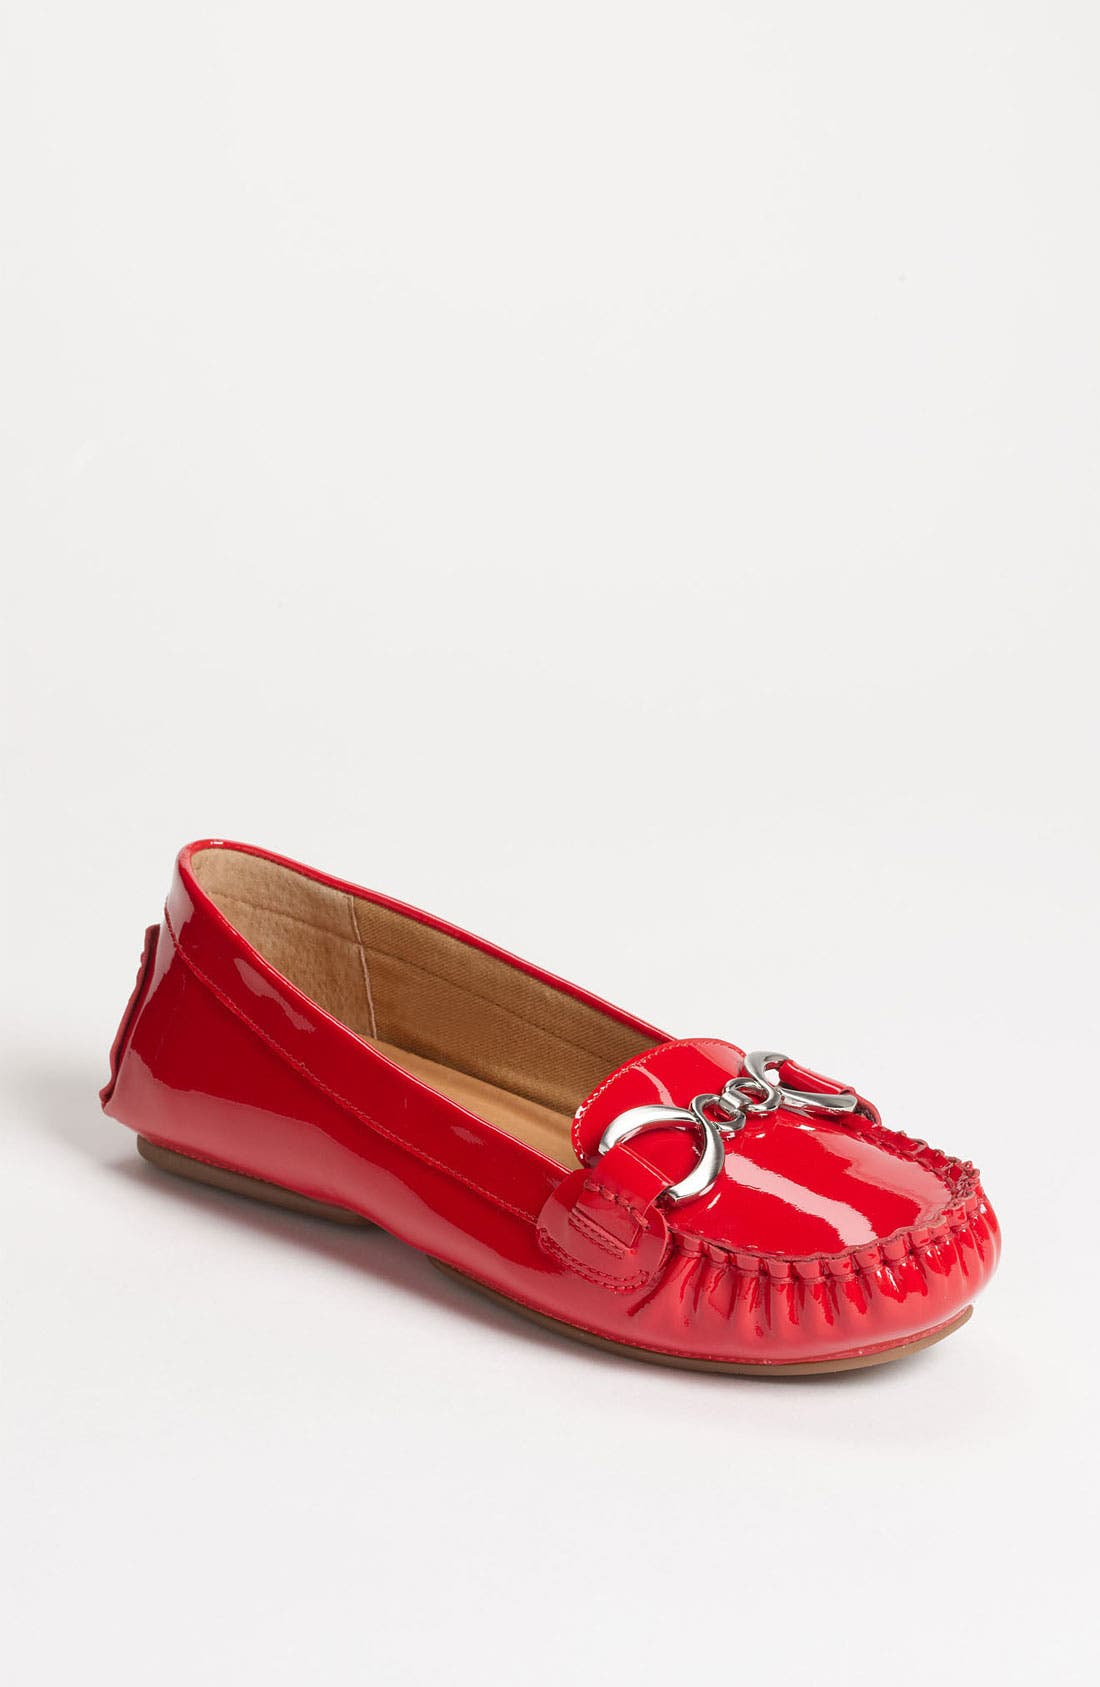 Alternate Image 1 Selected - Franco Sarto 'Millicent' Flat (Nordstrom Exclusive)